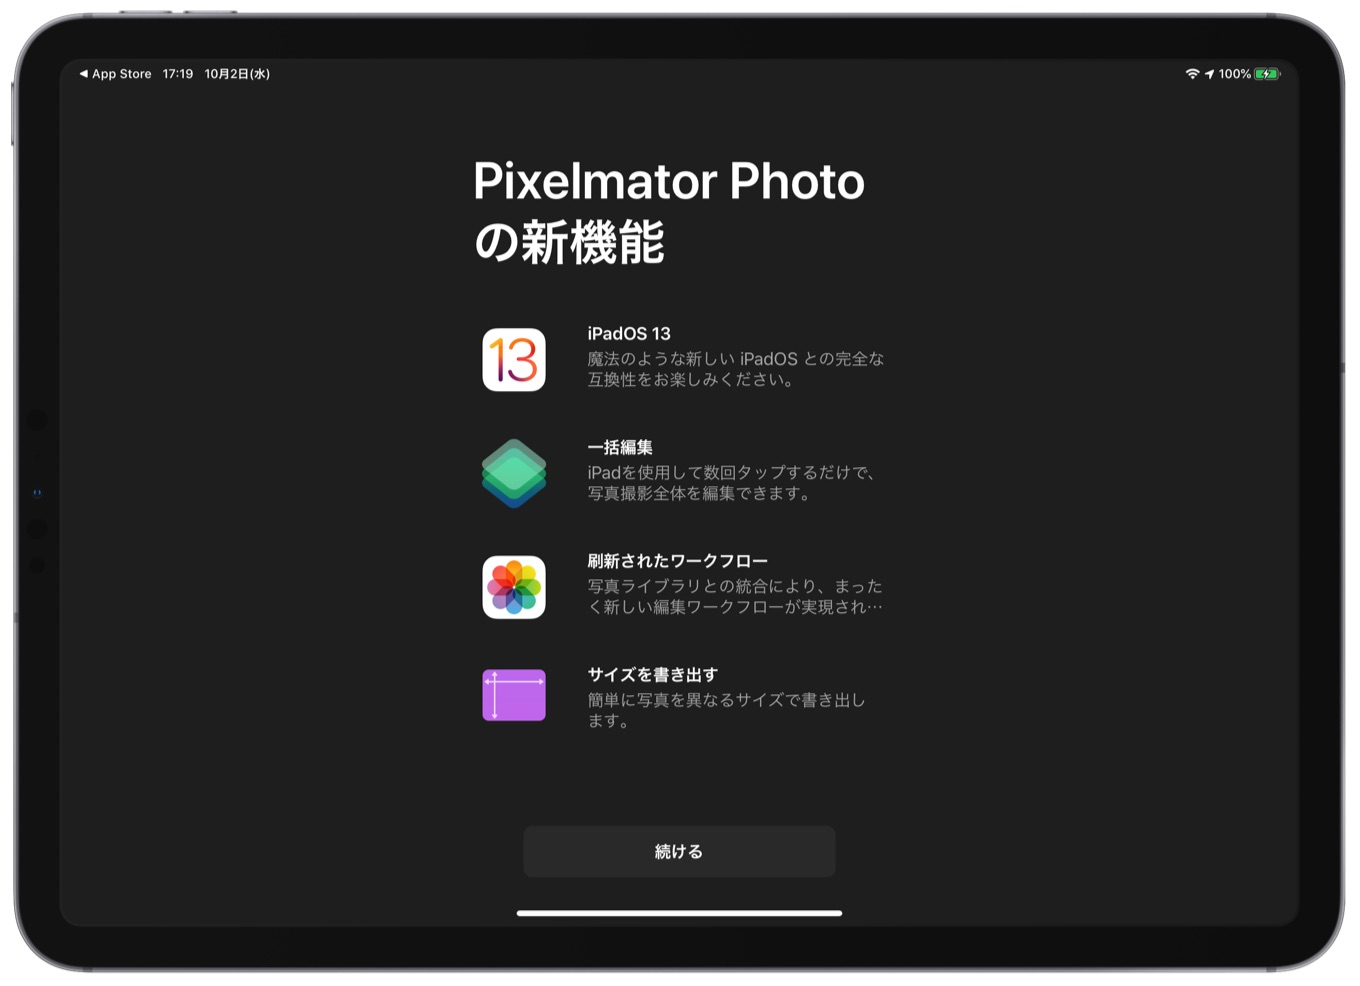 Pixelmator Photo for iPad